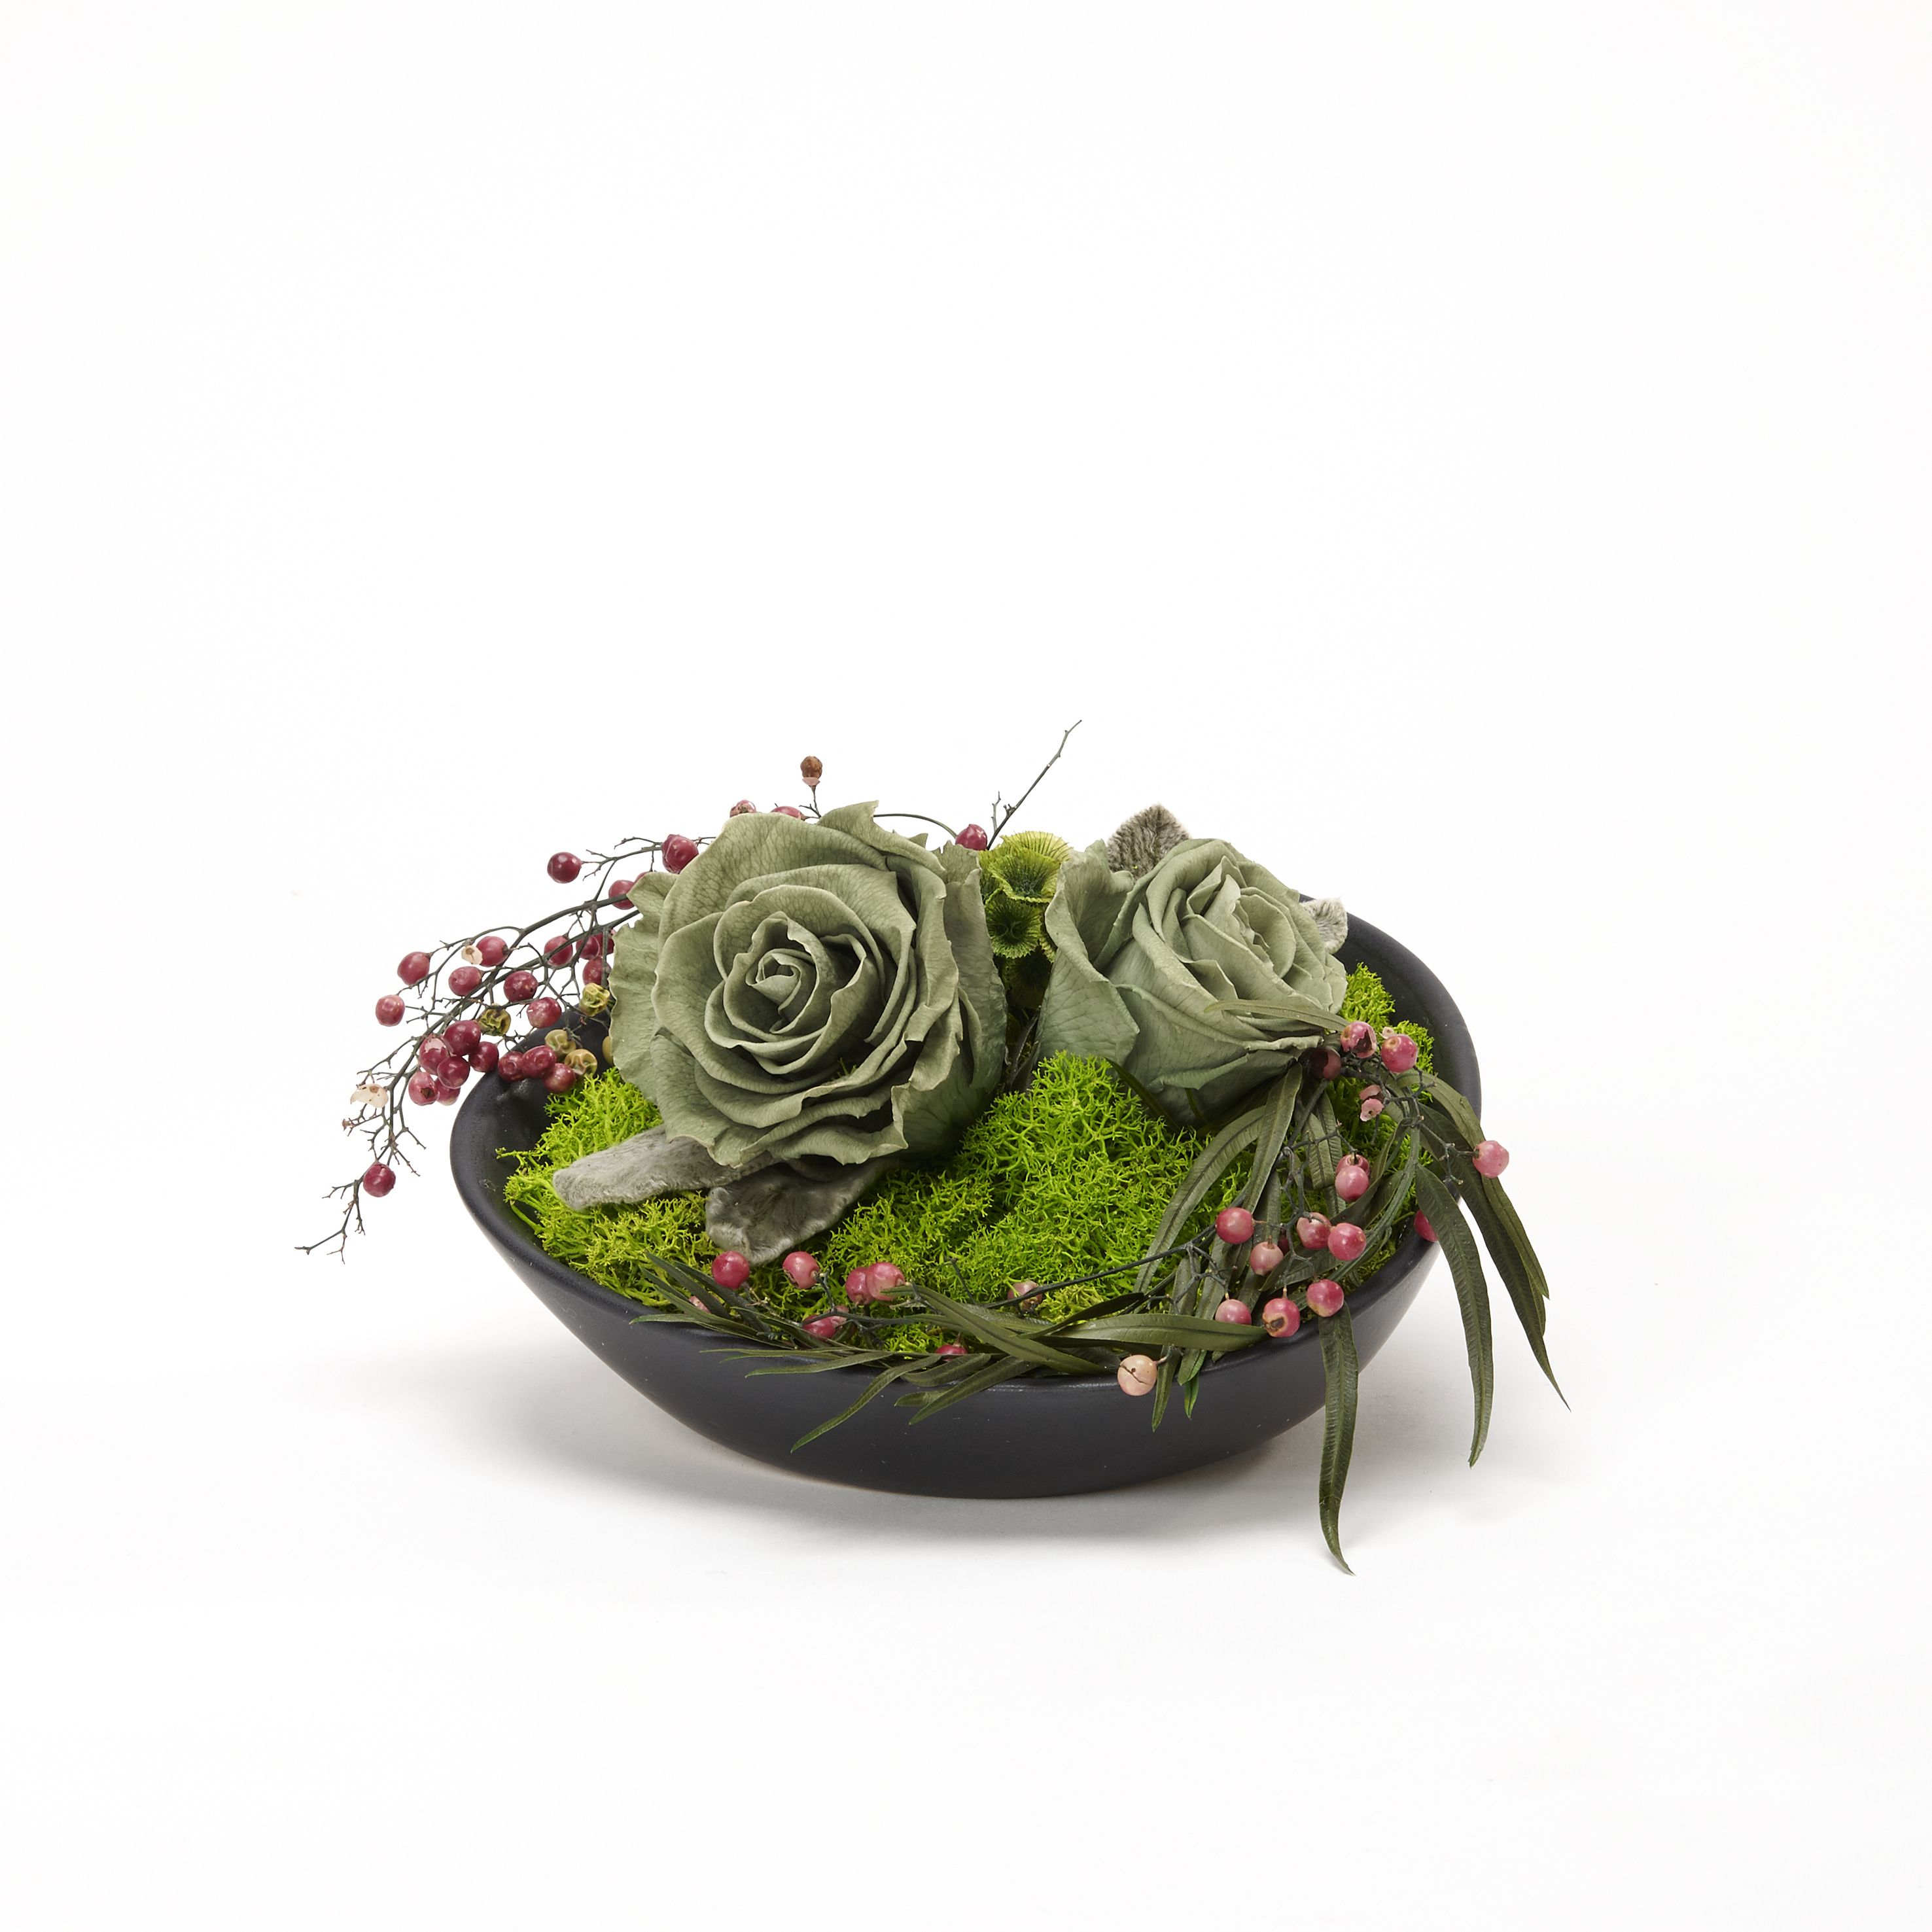 Green moss with pepper and two green tea roses. The perfect color match!